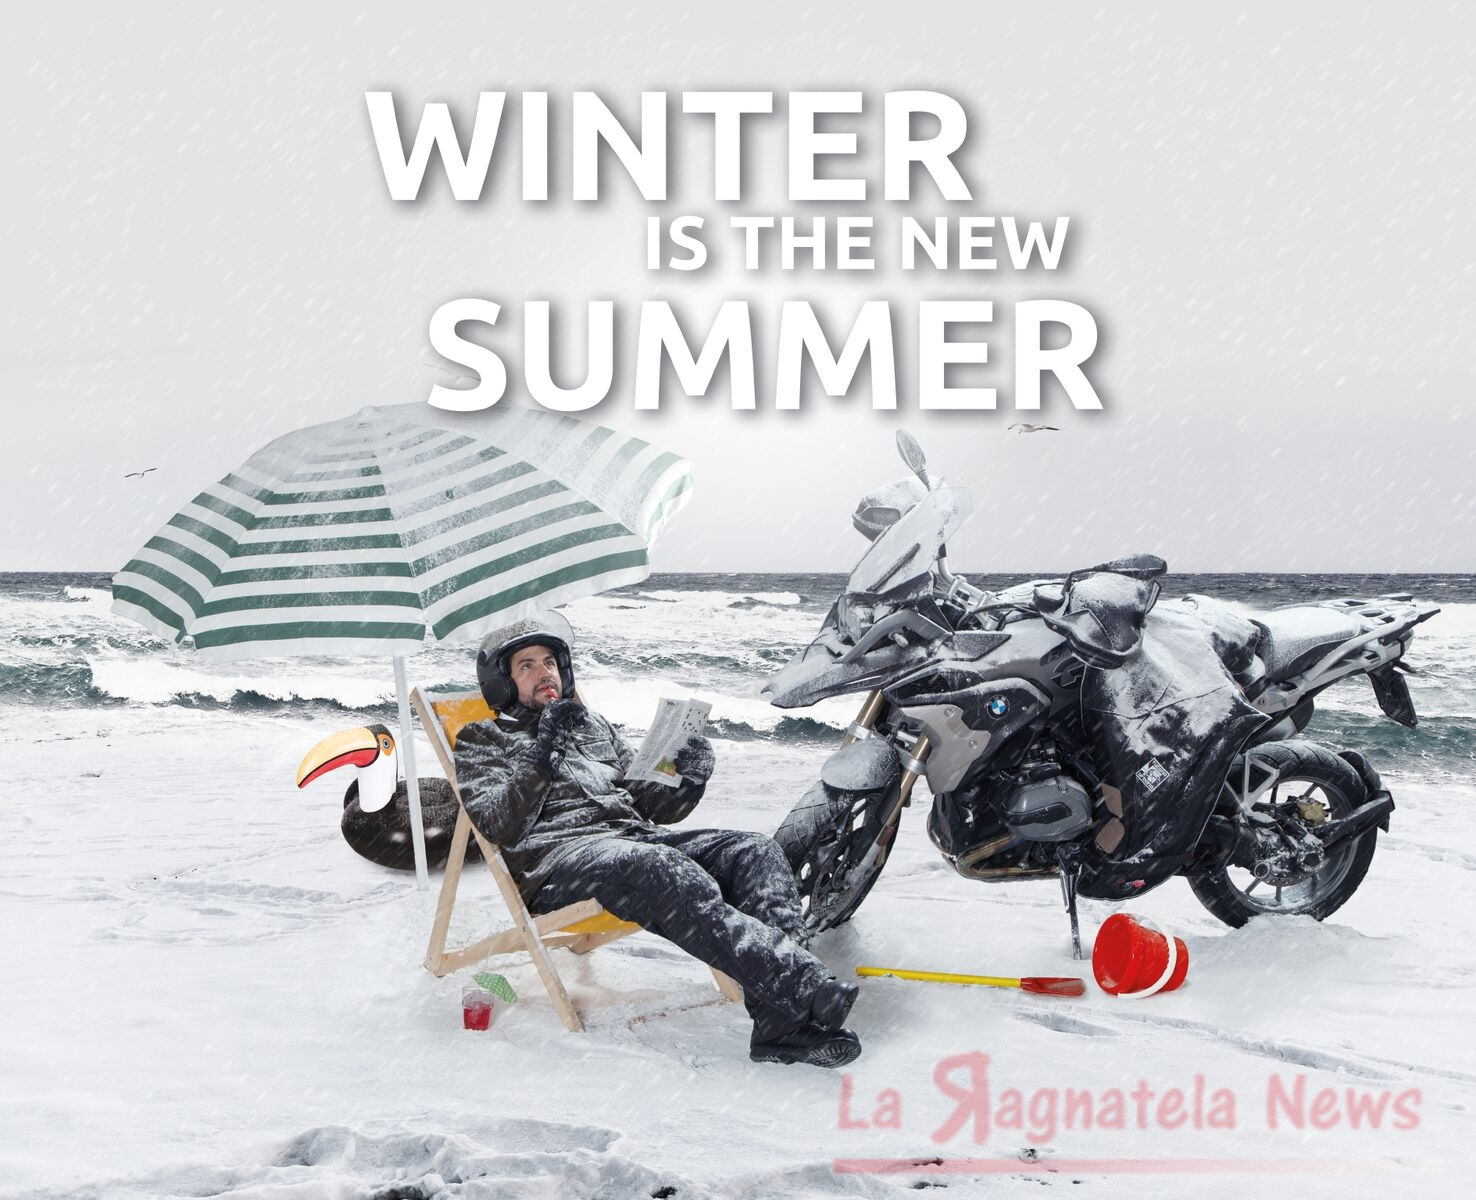 Tucano Urbano, le nuove proposte per l'inverno 2018/19 [Winter is the new summer]